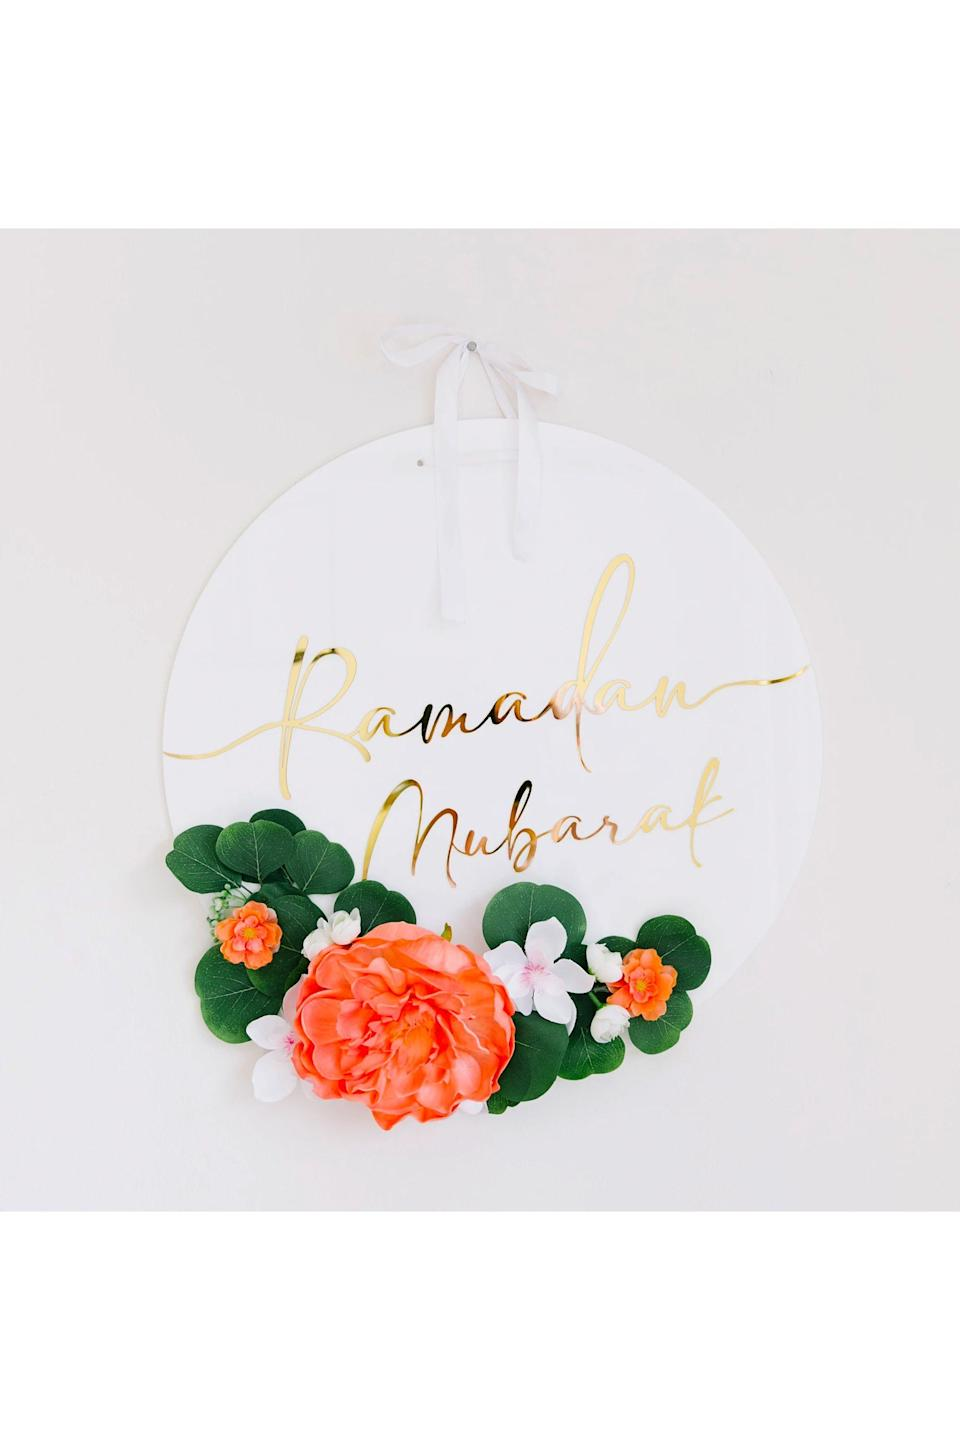 """<p><strong>Amasi Decor</strong></p><p>amasidecor.com</p><p><strong>$45.95</strong></p><p><a href=""""https://amasidecor.com/collections/ramadan/products/ramadan-mubarak-wreath"""" rel=""""nofollow noopener"""" target=""""_blank"""" data-ylk=""""slk:Shop Now"""" class=""""link rapid-noclick-resp"""">Shop Now</a></p><p>So cute you might want to keep it up year-round, this acrylic Ramadan wreath would be the cherry on top of your holiday decor.</p>"""